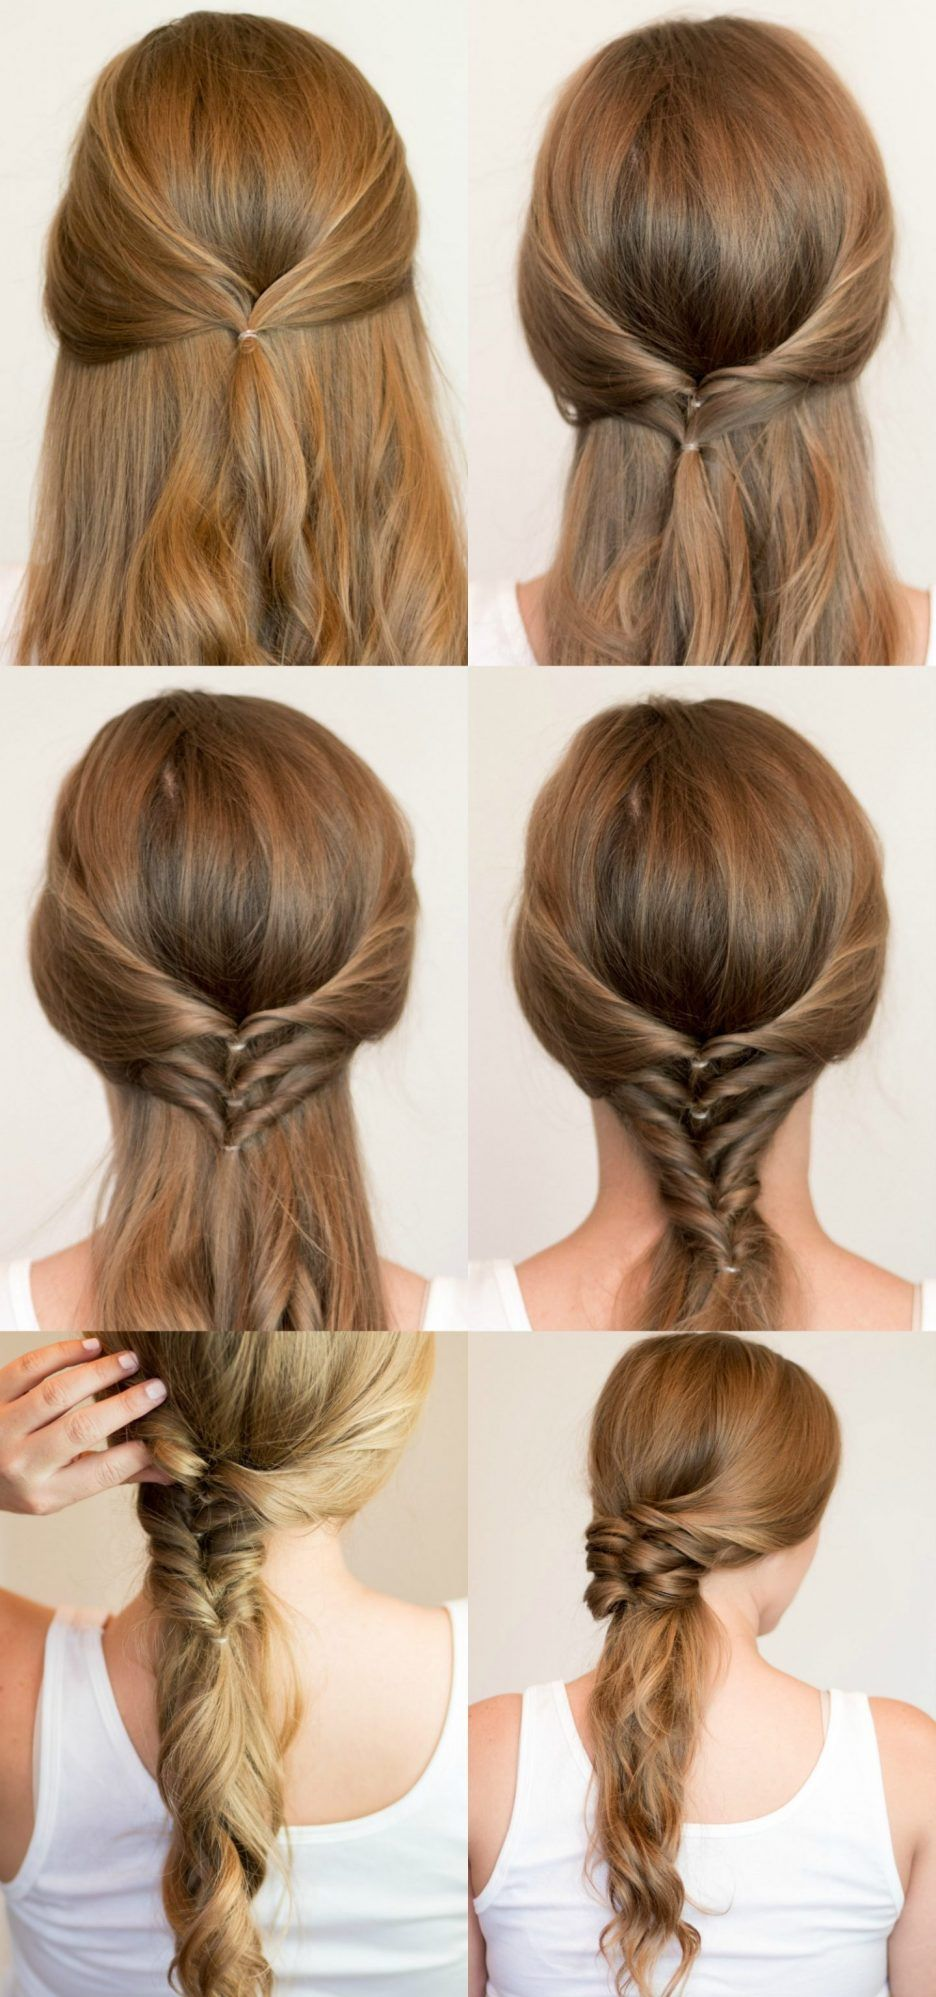 Luce Increible Con Estos Sencillos Peinados Peinados Faciles Paso A Paso Peinados Faciles Heatless Hairstyles Braids For Long Hair Braided Hairstyles Easy